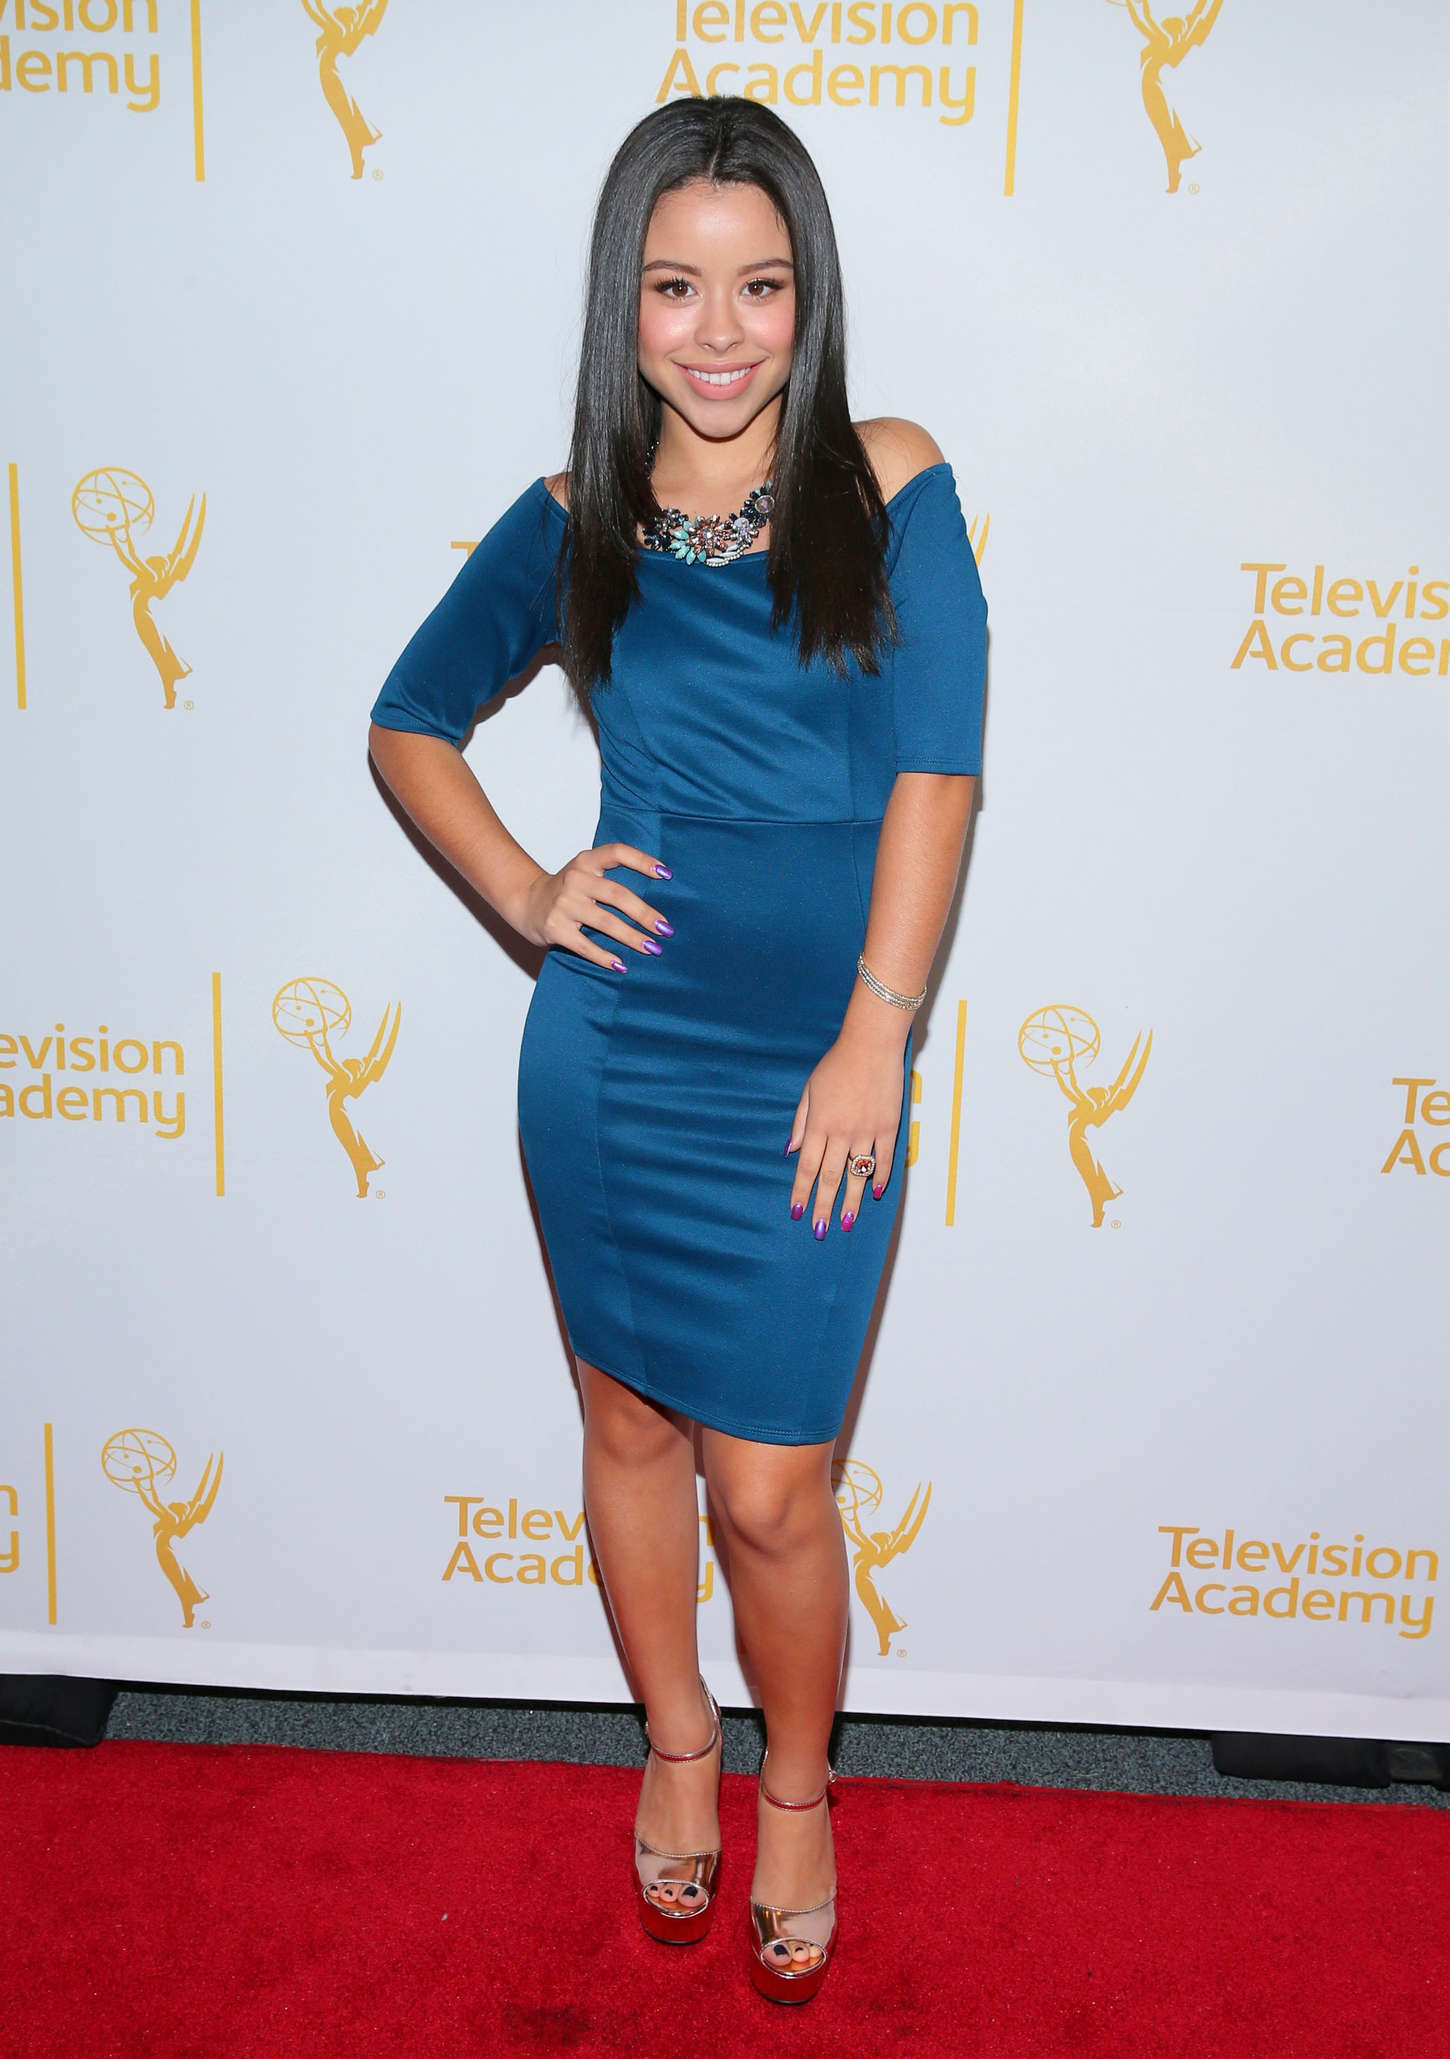 Cierra Ramirez Television Academy Presents An Evening With The Fosters in North Hollywood